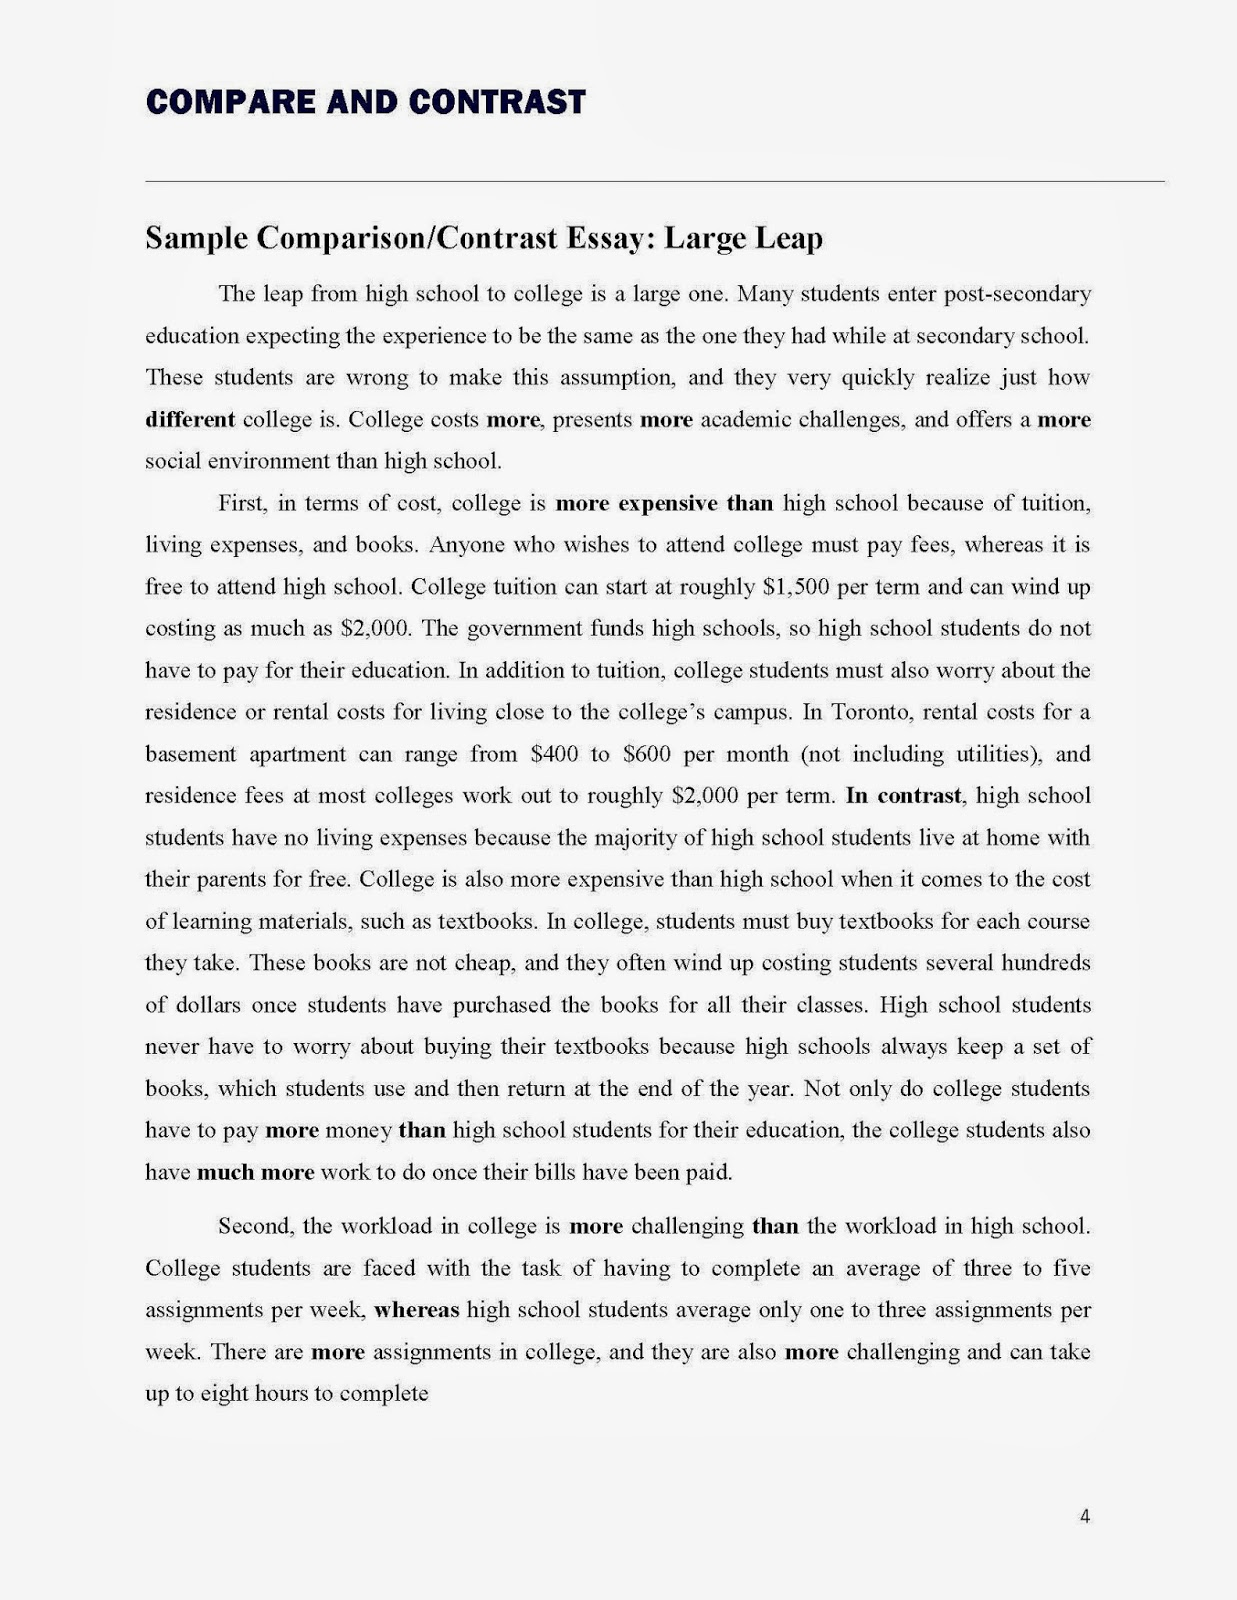 009 Compare20and20contrast20essay Page 4 Topics For Compare And Contrast Essay Amazing Essays Middle School Fun Full